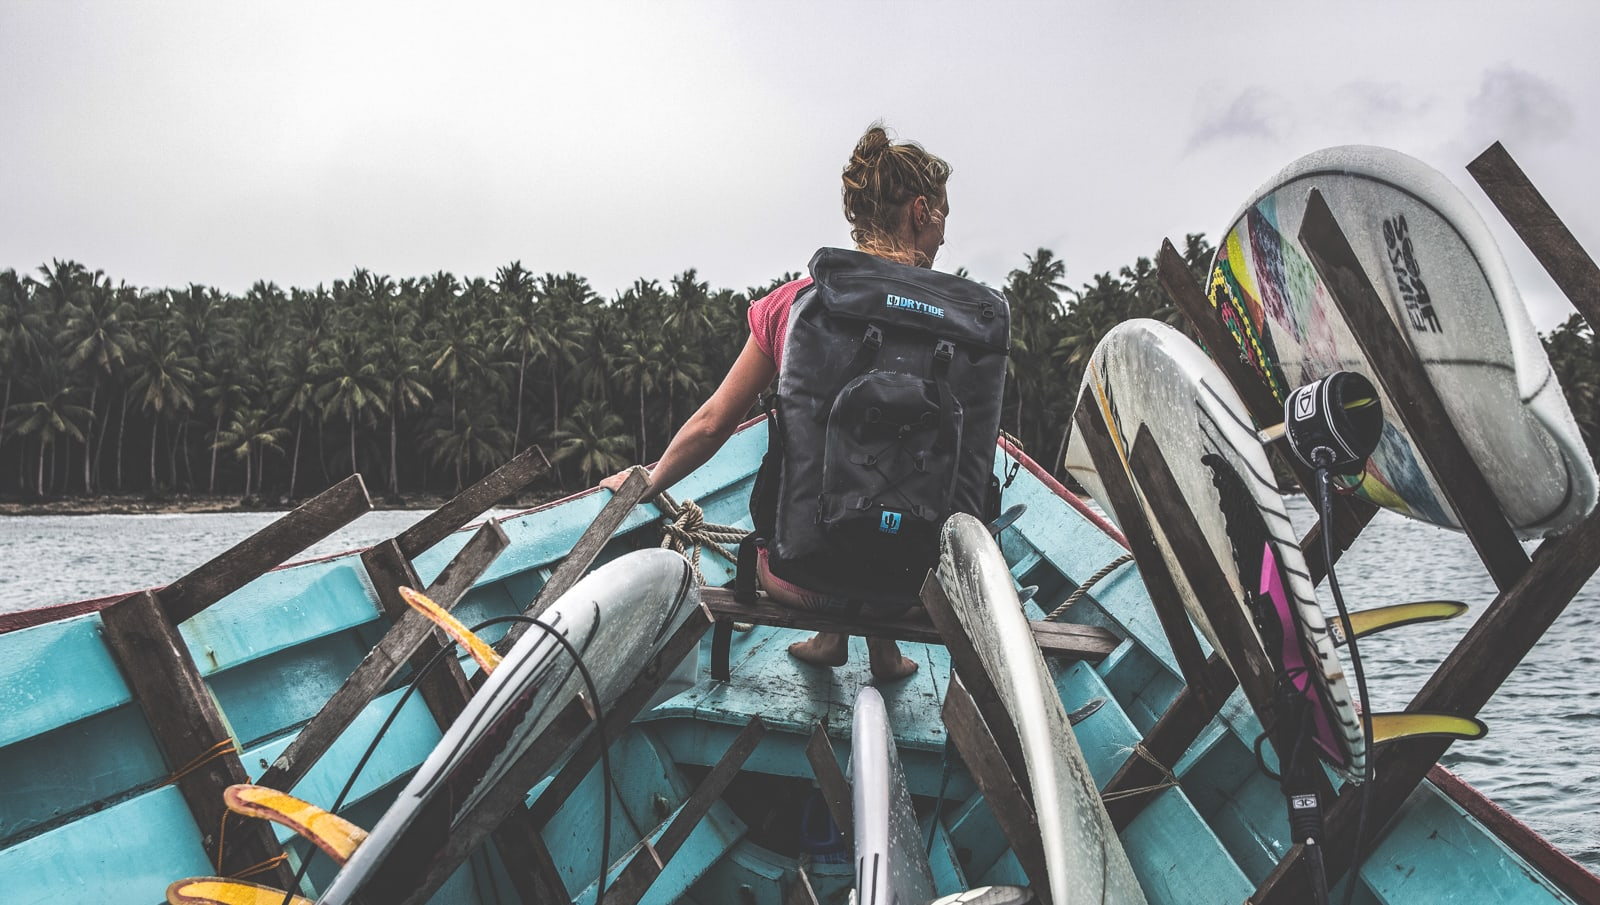 Travelre with a waterproof backpack on a boat